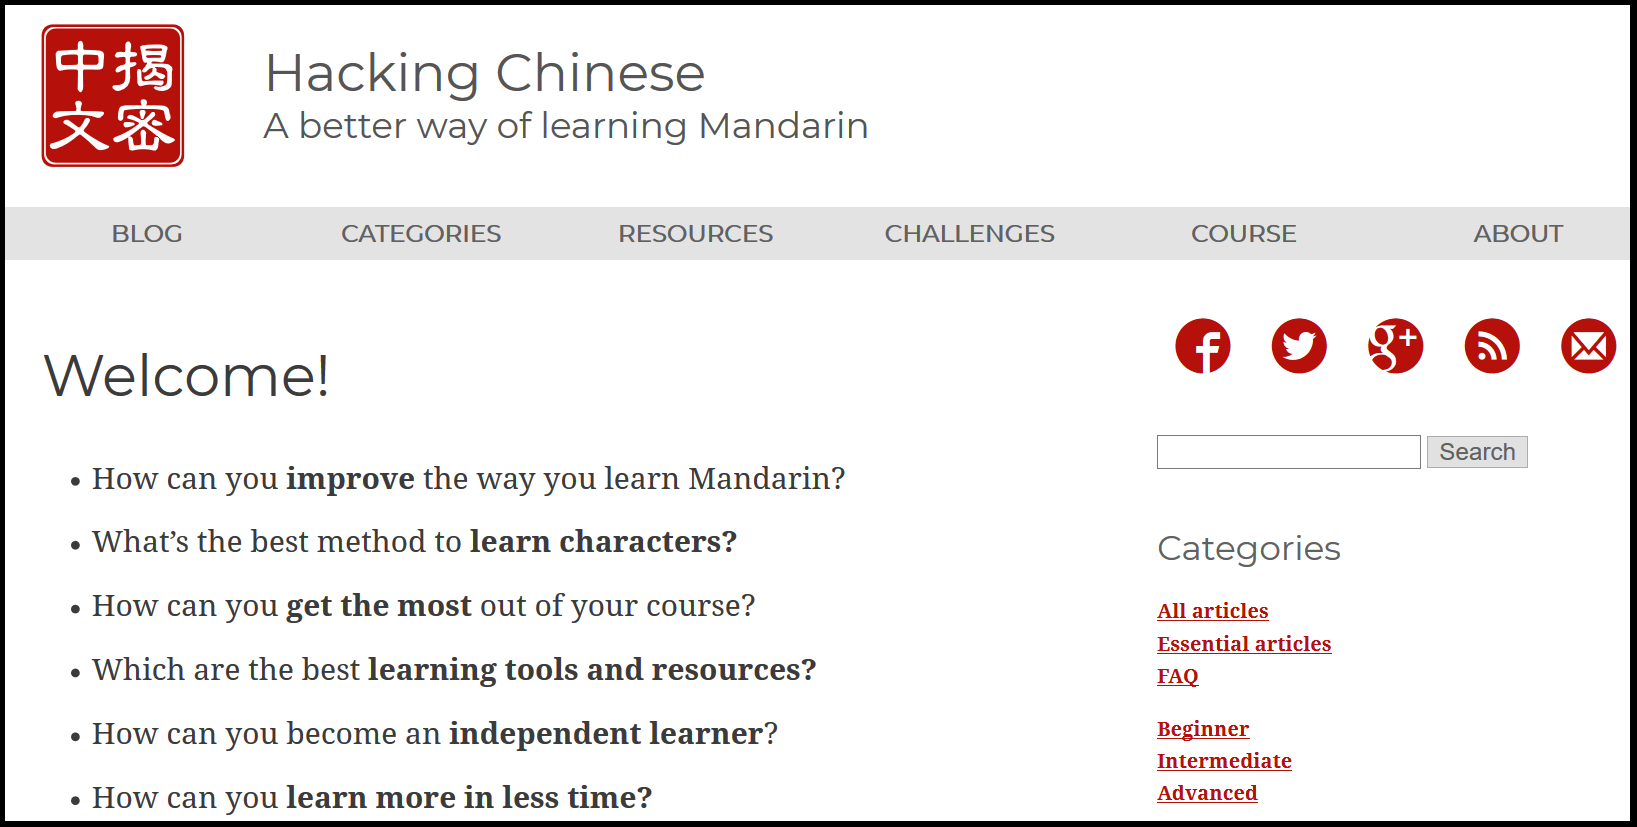 Hacking Chinese blog by Olle Linge from Sweden